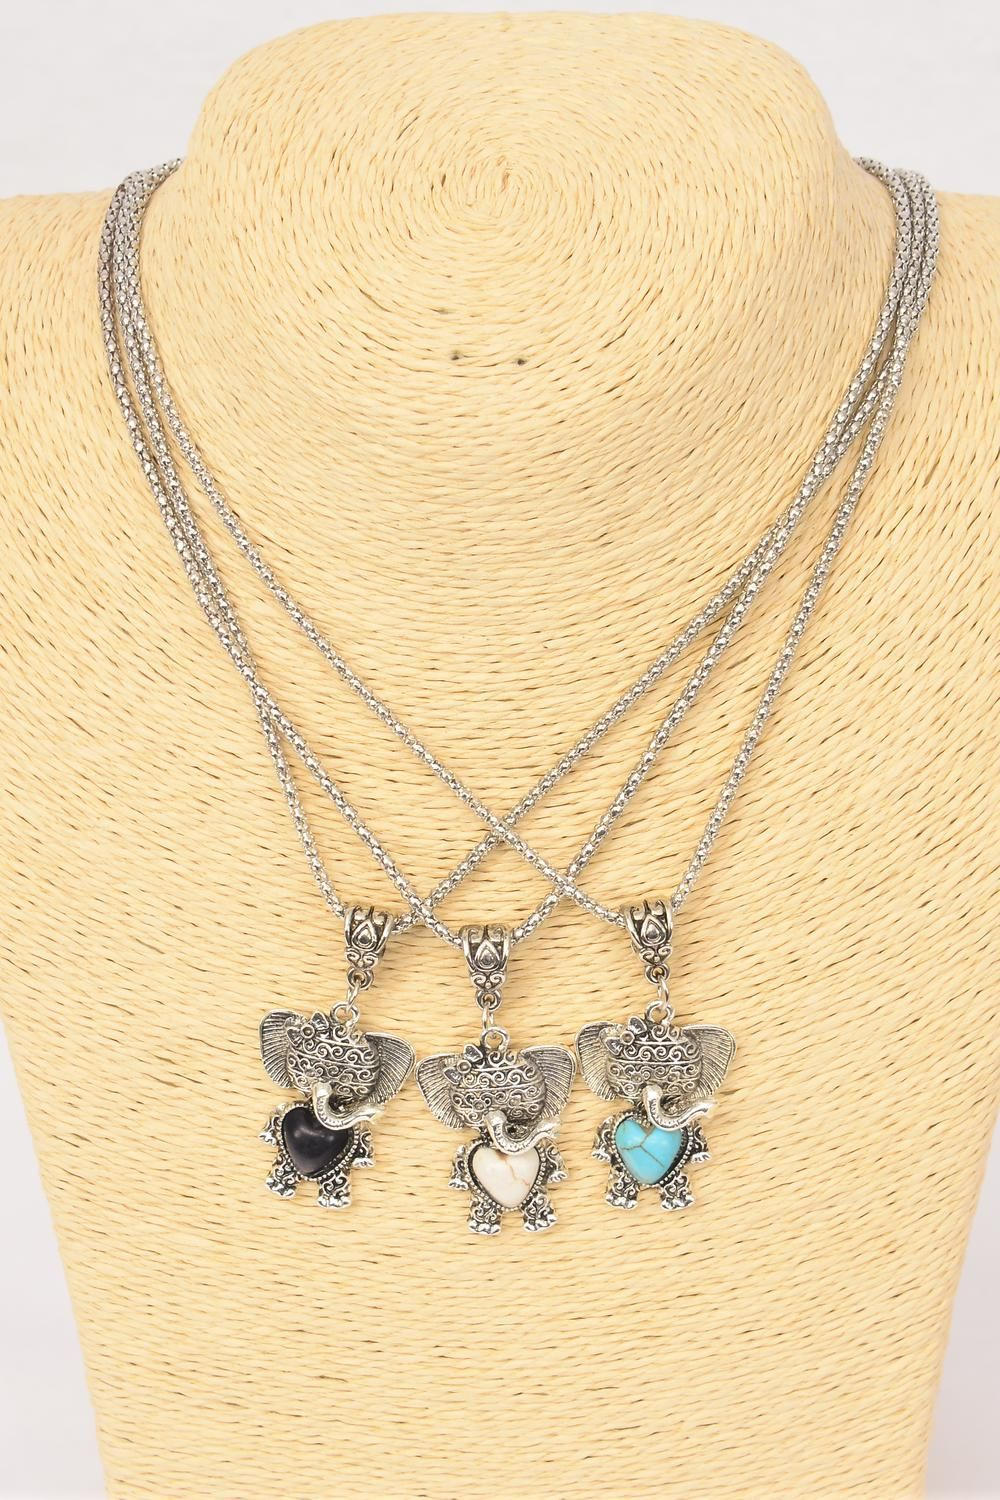 "Necklace Silver Chain Elephant Semiprecious Stone/DZ Pendant-1.25"" x 1."" Wide,Chain-18"" Extension Chain,4 Ivory,4 Black,4 Turquoise Asst,Hang Tag & OPP Bag & UPC Code"